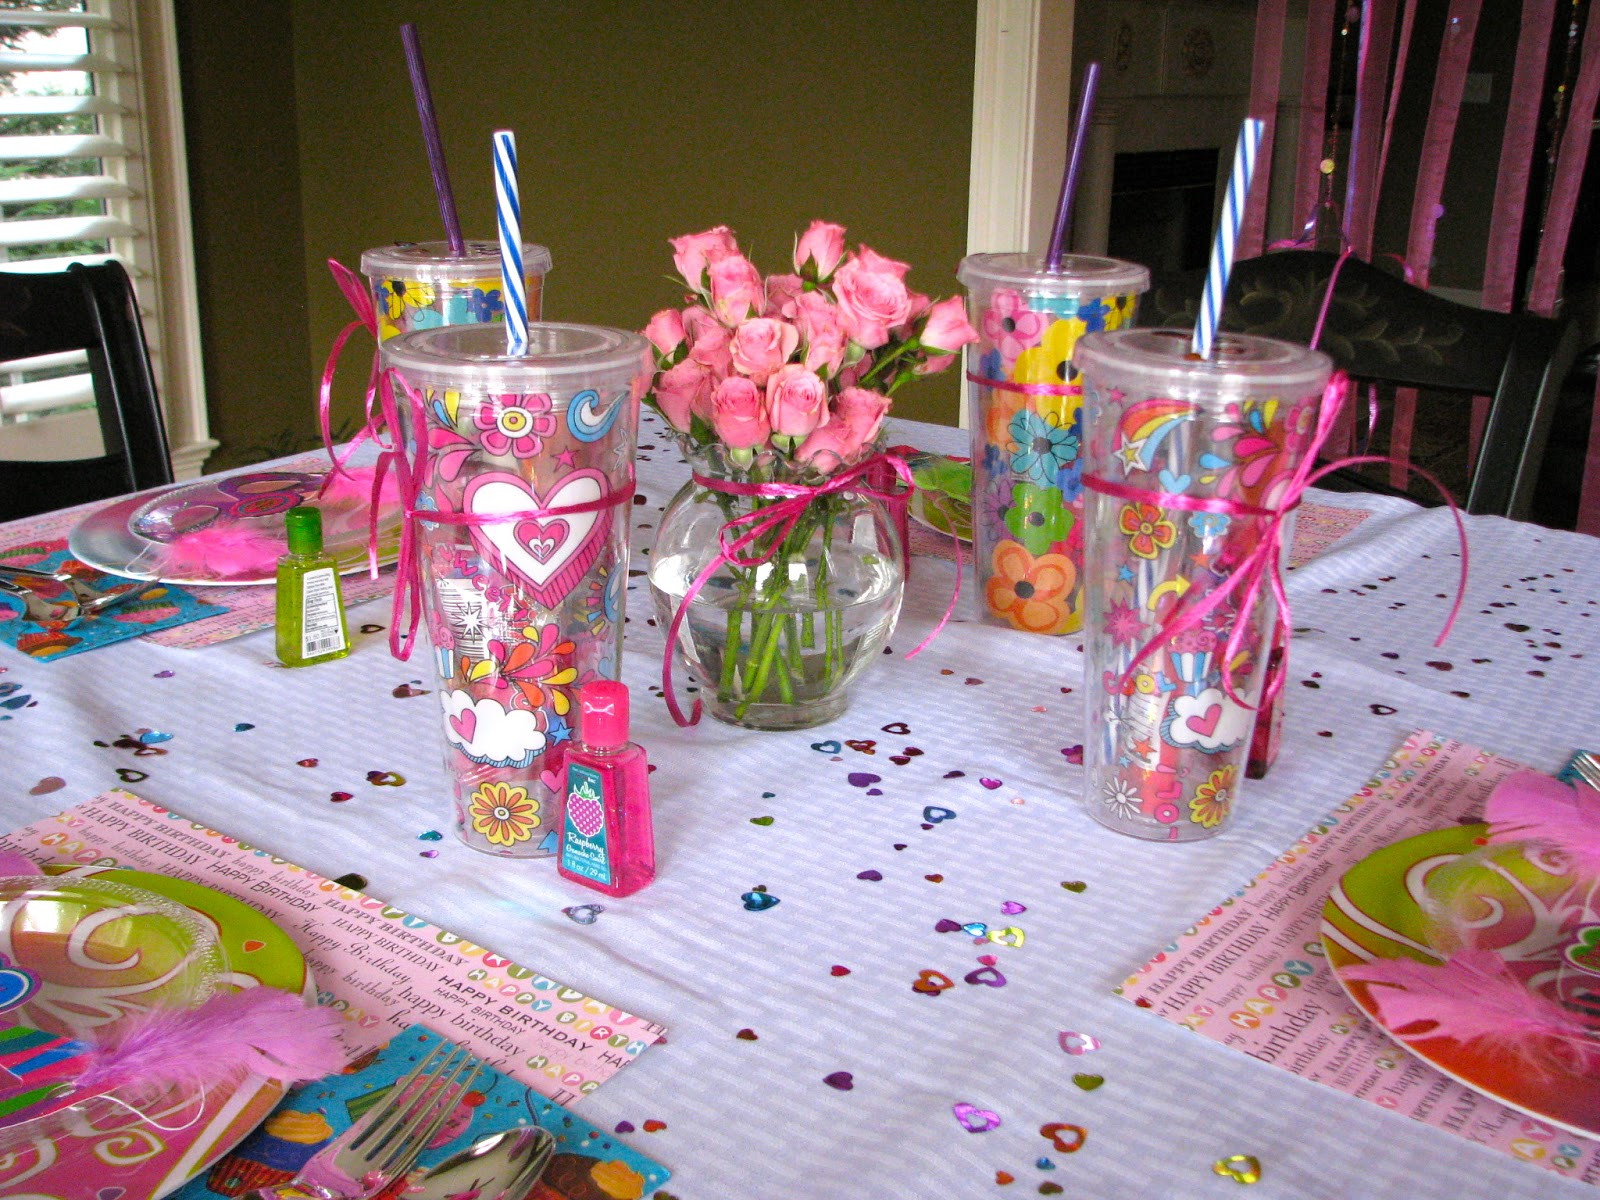 Best ideas about Girls Birthday Party Decorations . Save or Pin HomeMadeville Your Place for HomeMade Inspiration Girl s Now.